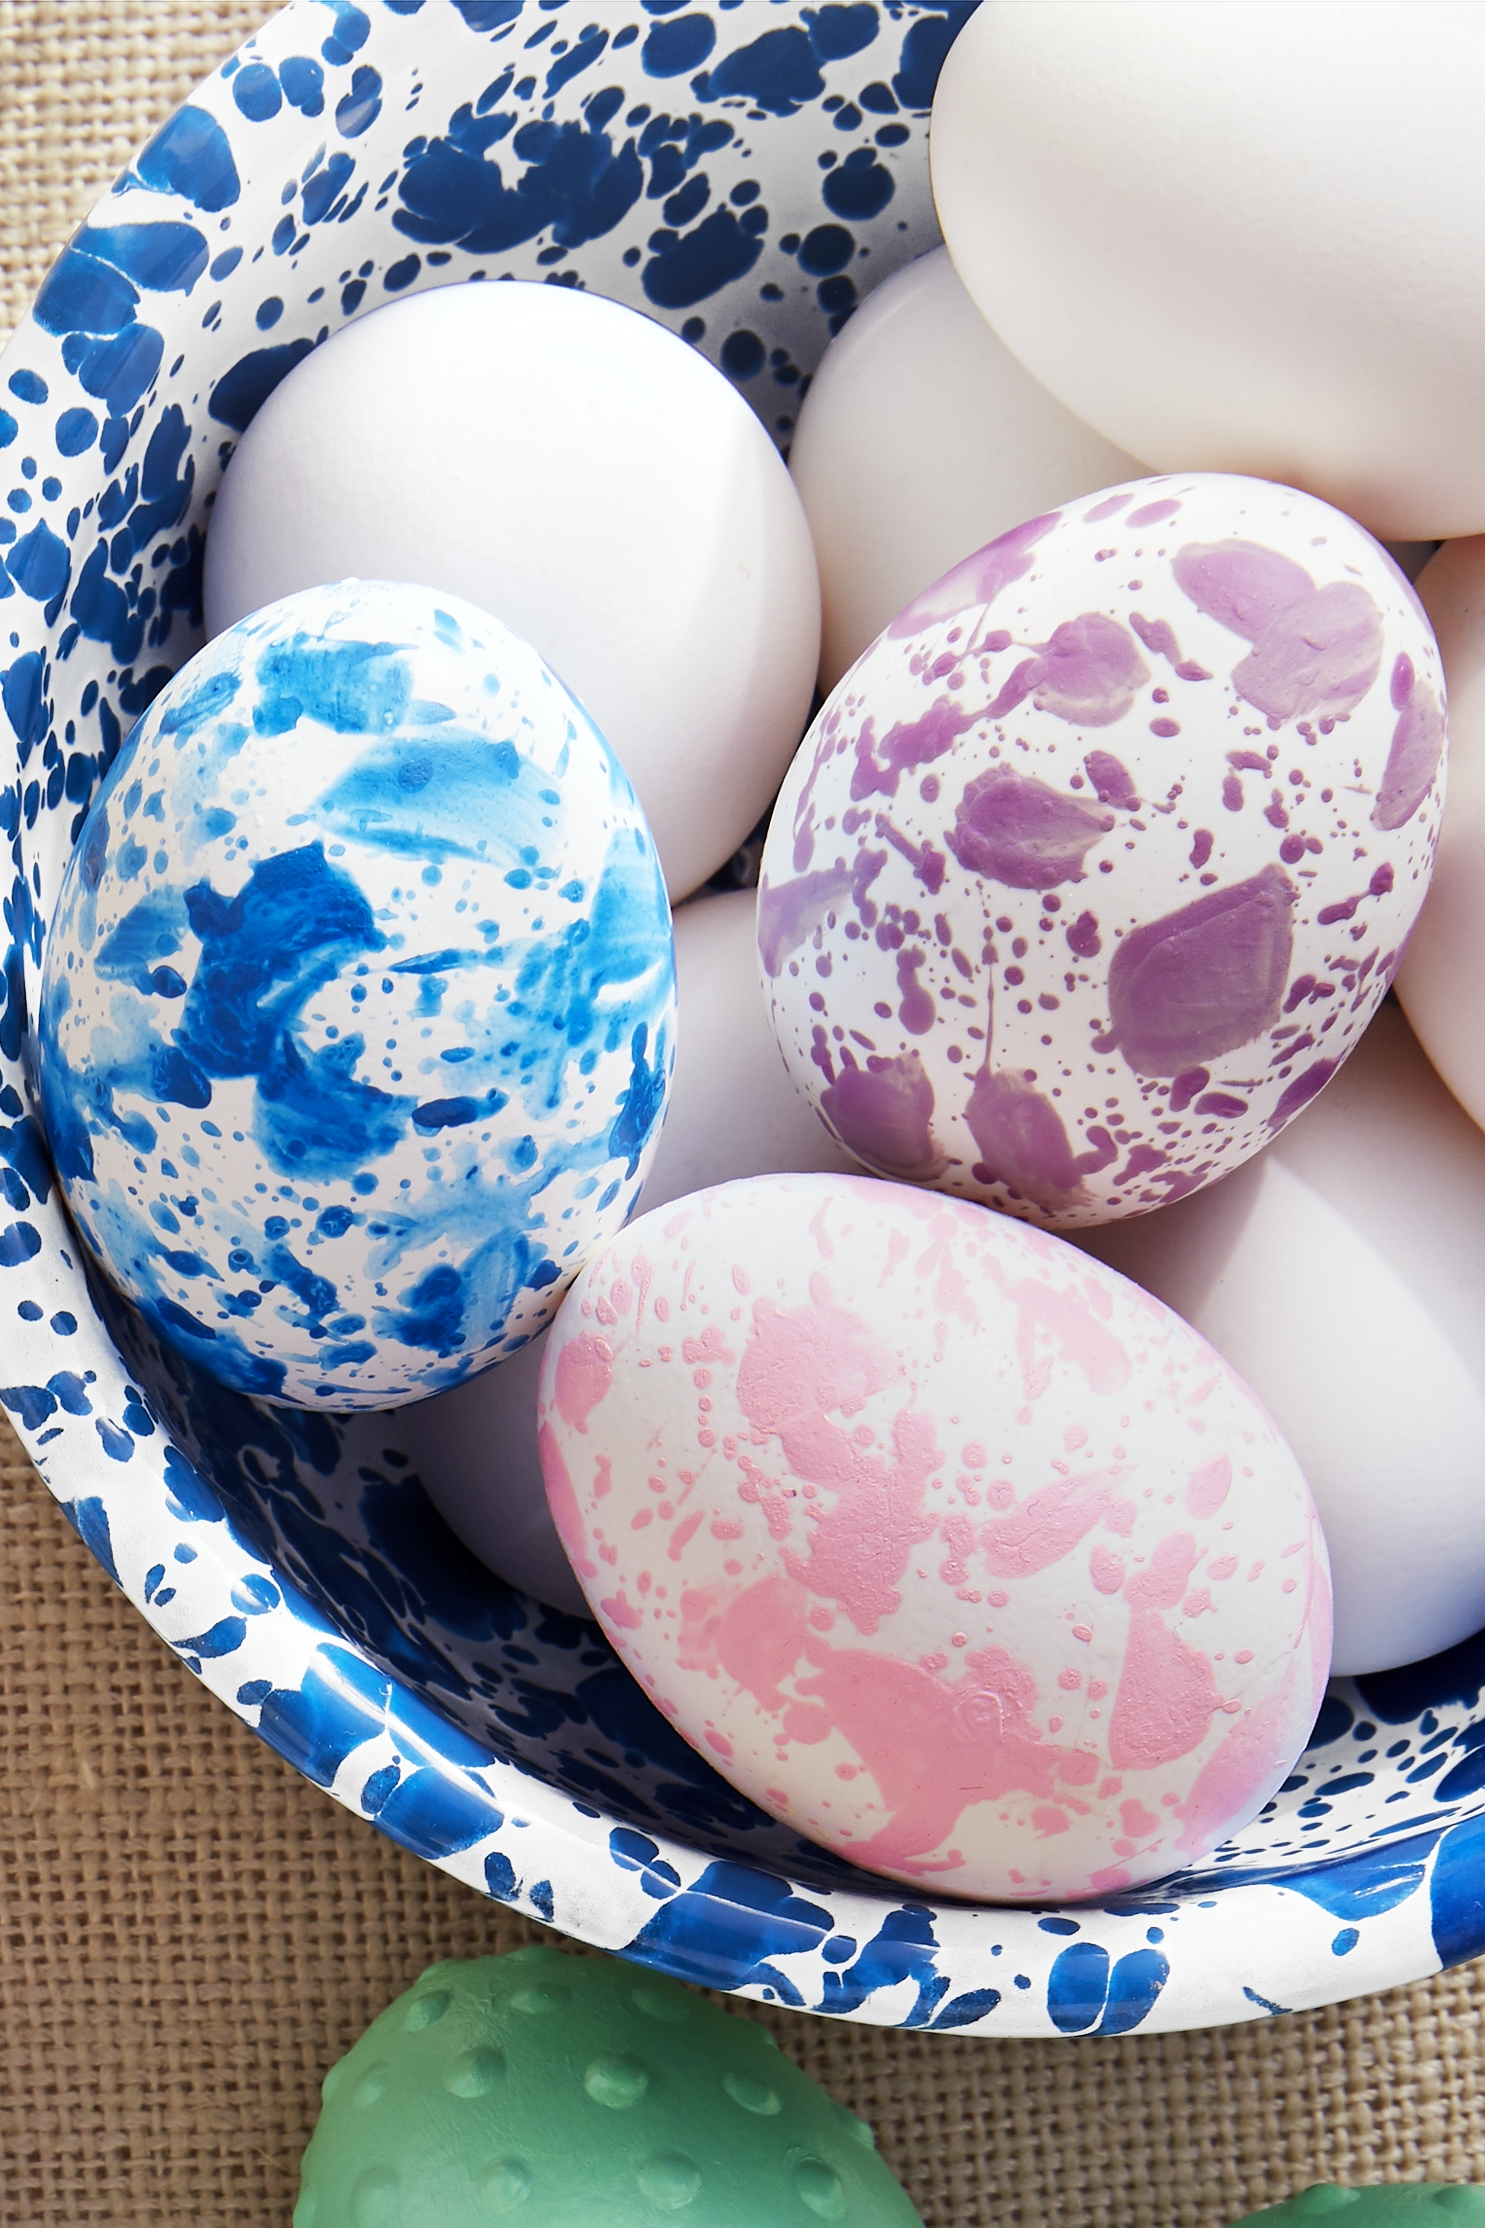 60+ fun easter egg designs - creative ideas for easter egg